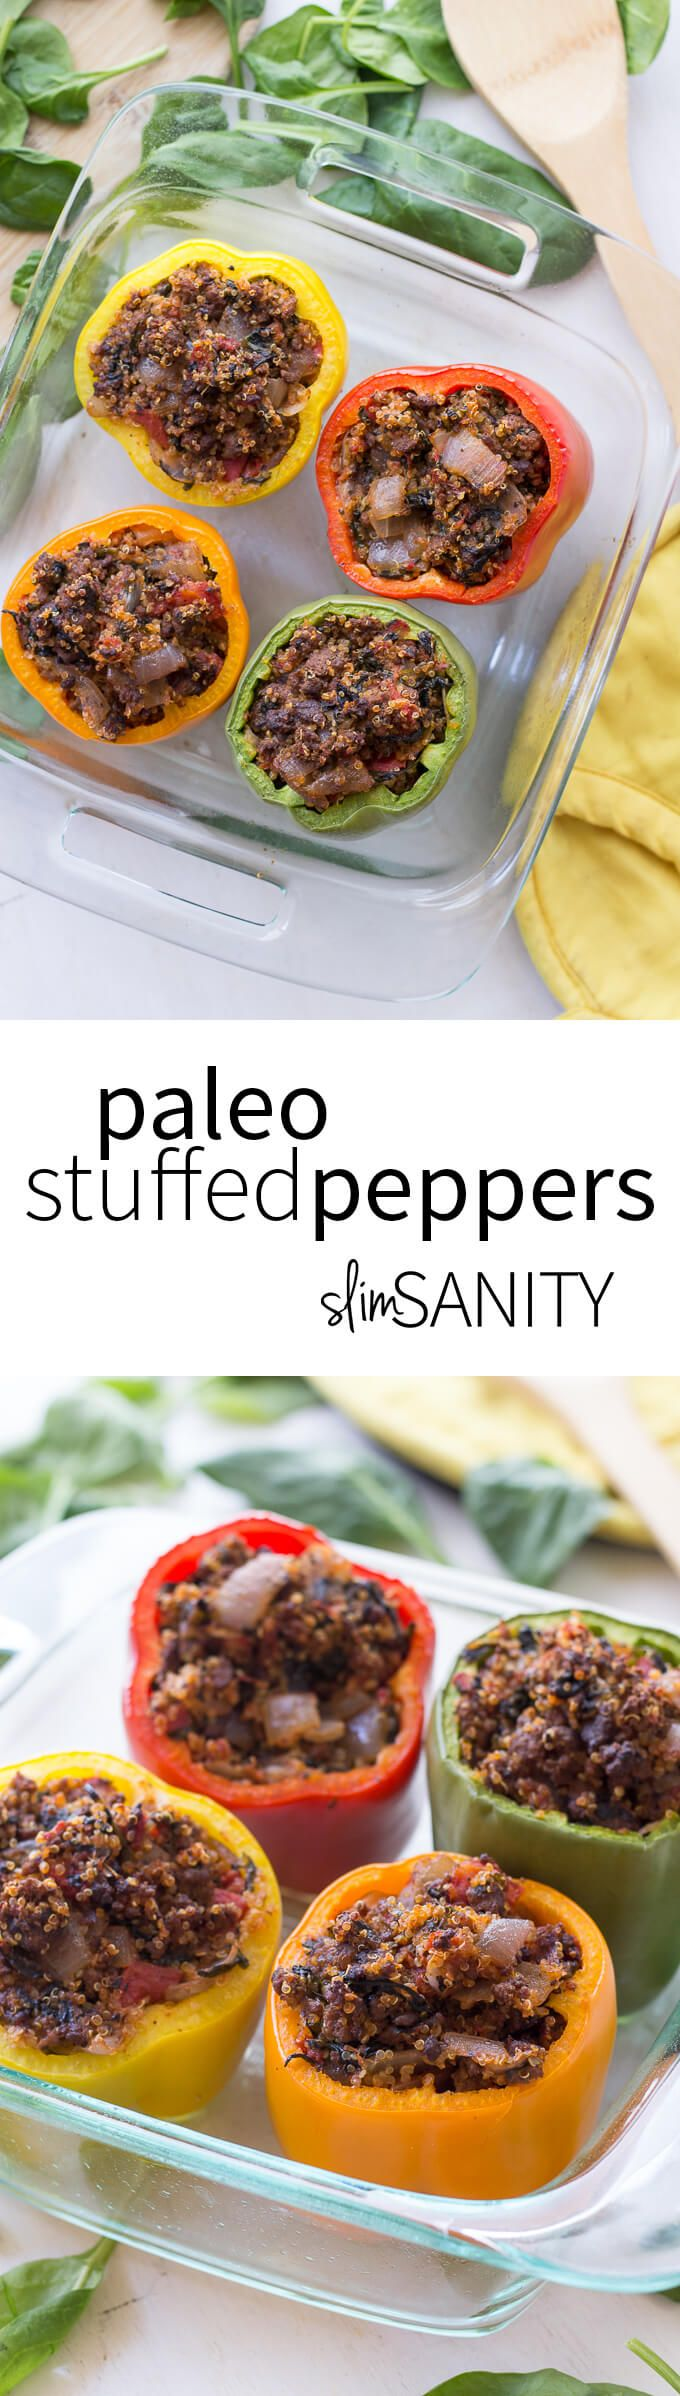 These paleo stuffed peppers are an easy way to get a balanced, healthy dinner with lots of veggies that your whole family will enjoy! | slimsanity.com